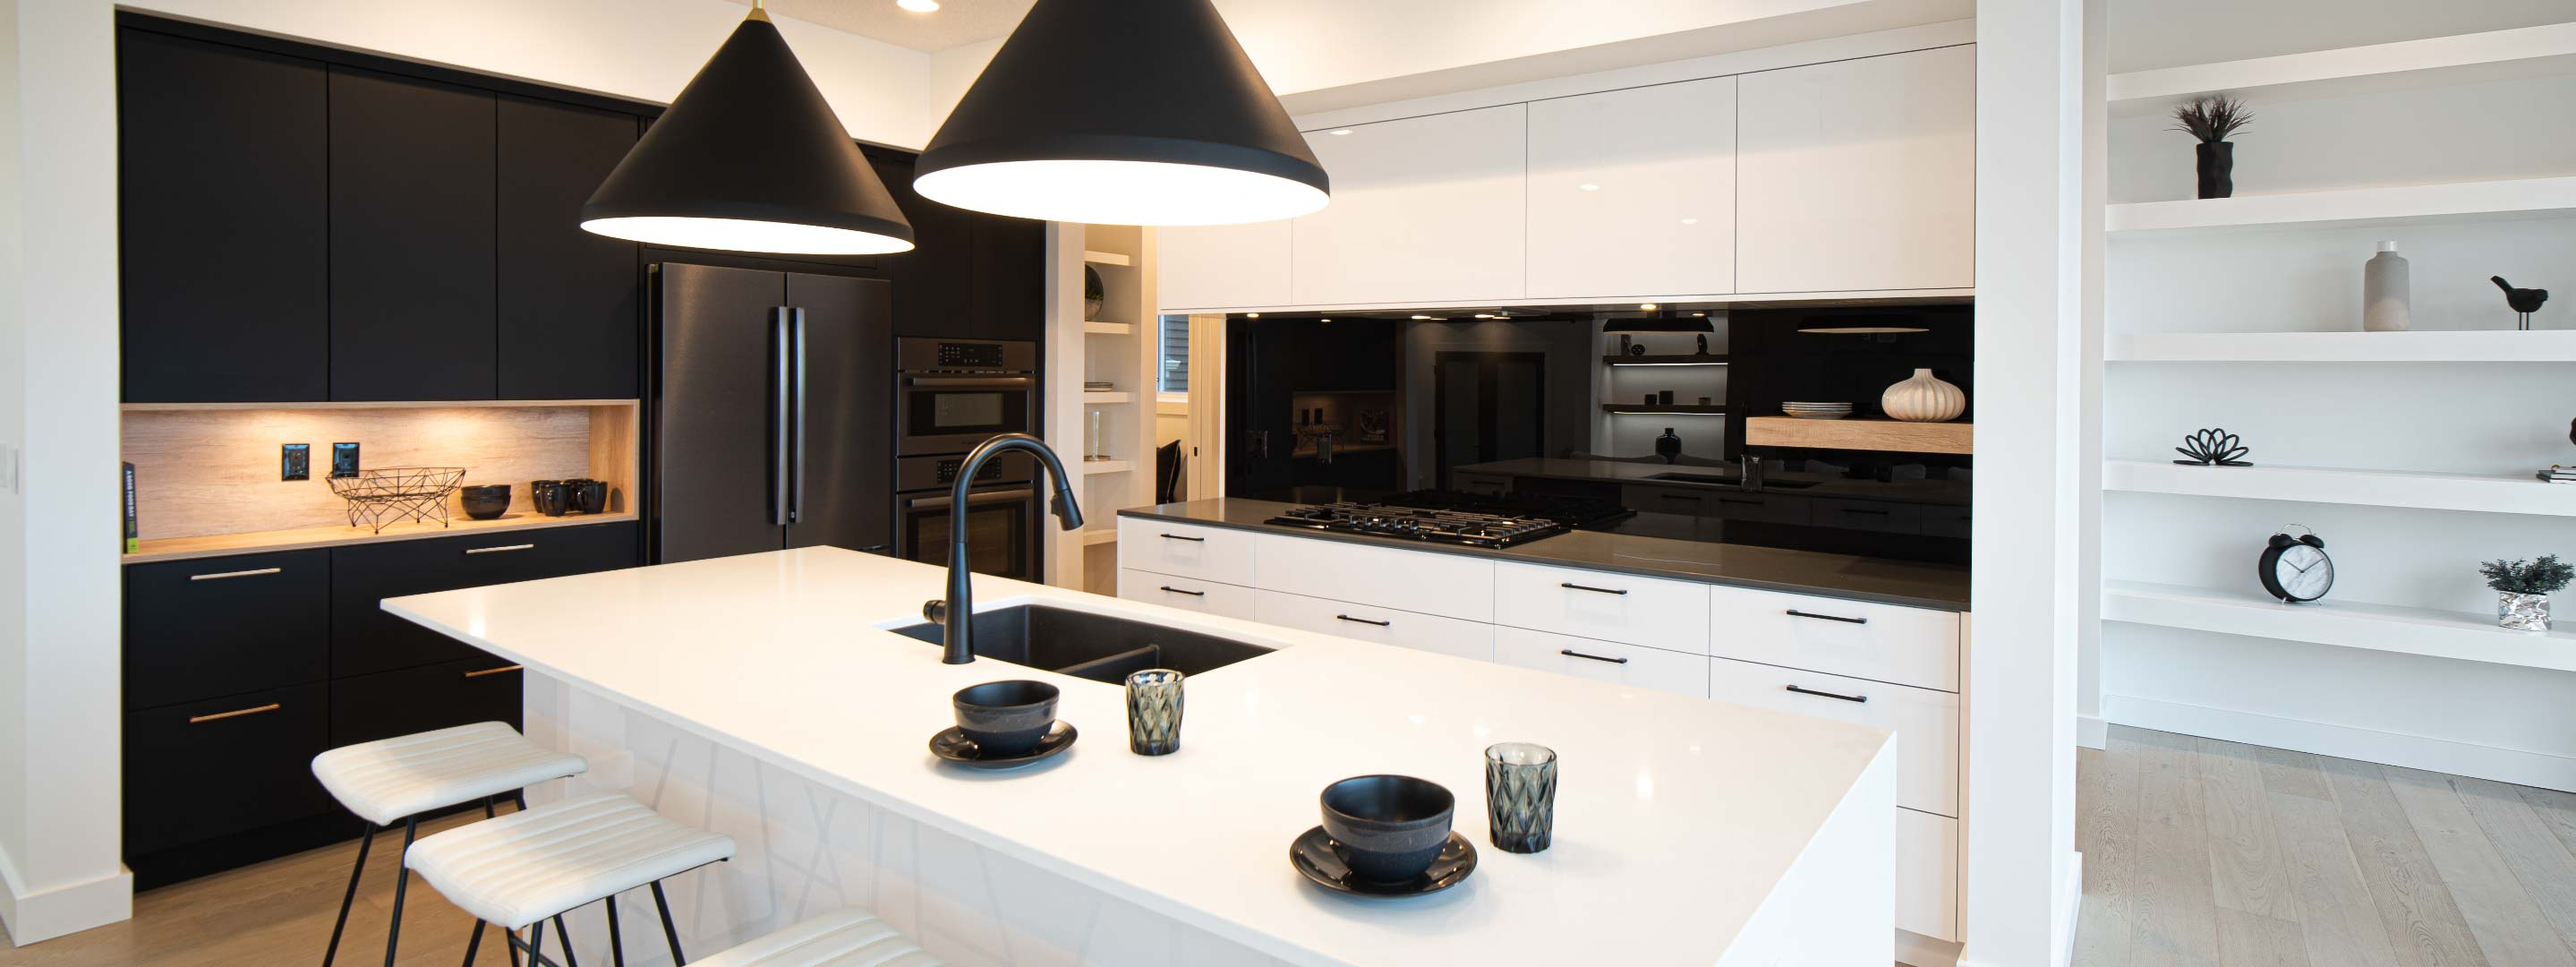 Kanvi-homes-new-home-builder-in-edmonton-luxury-modern-homesR2